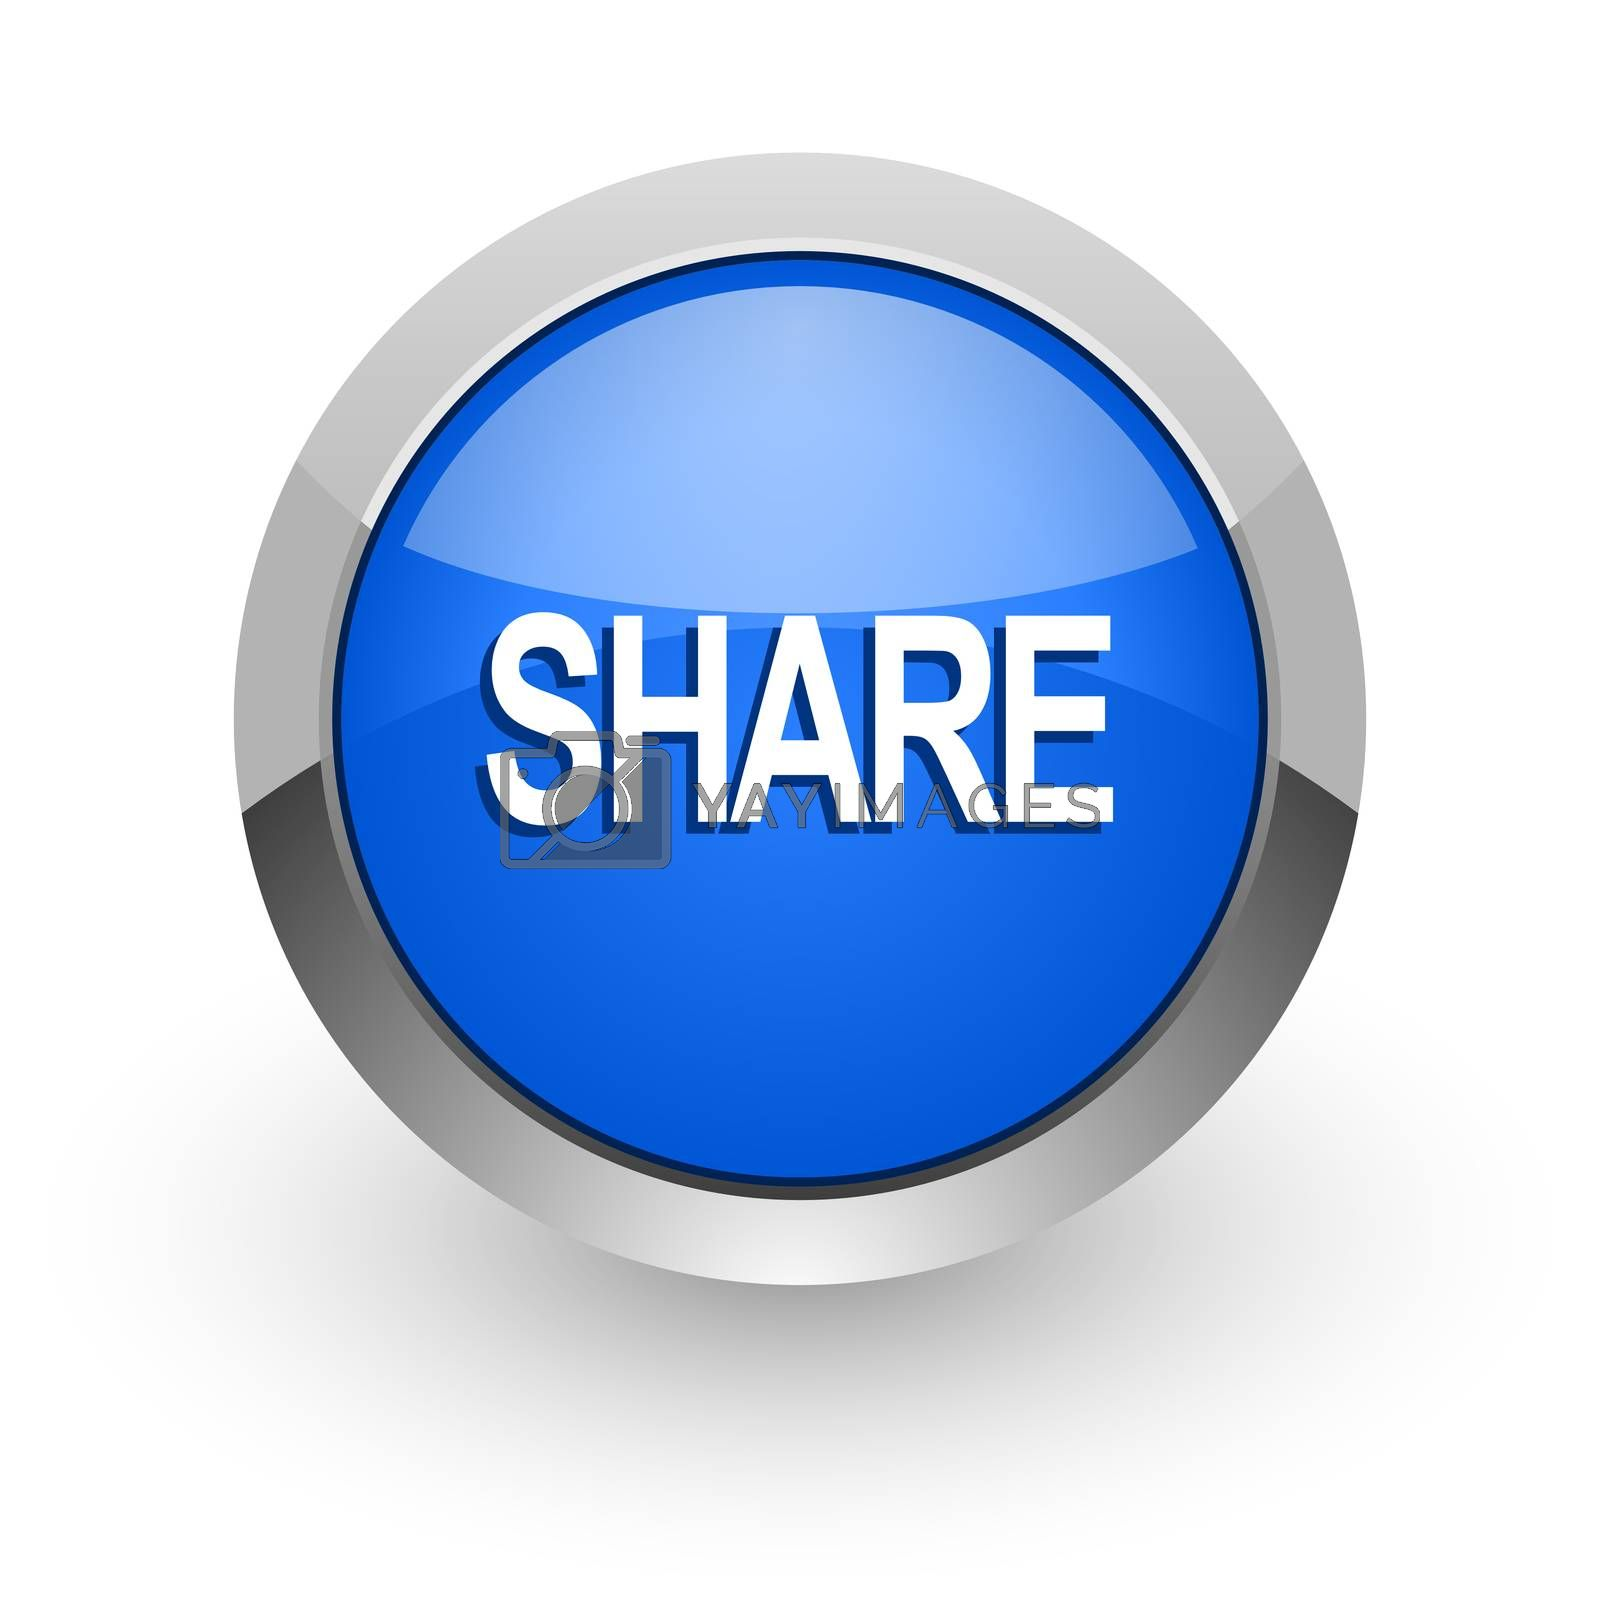 Royalty free image of share blue glossy web icon by alexwhite